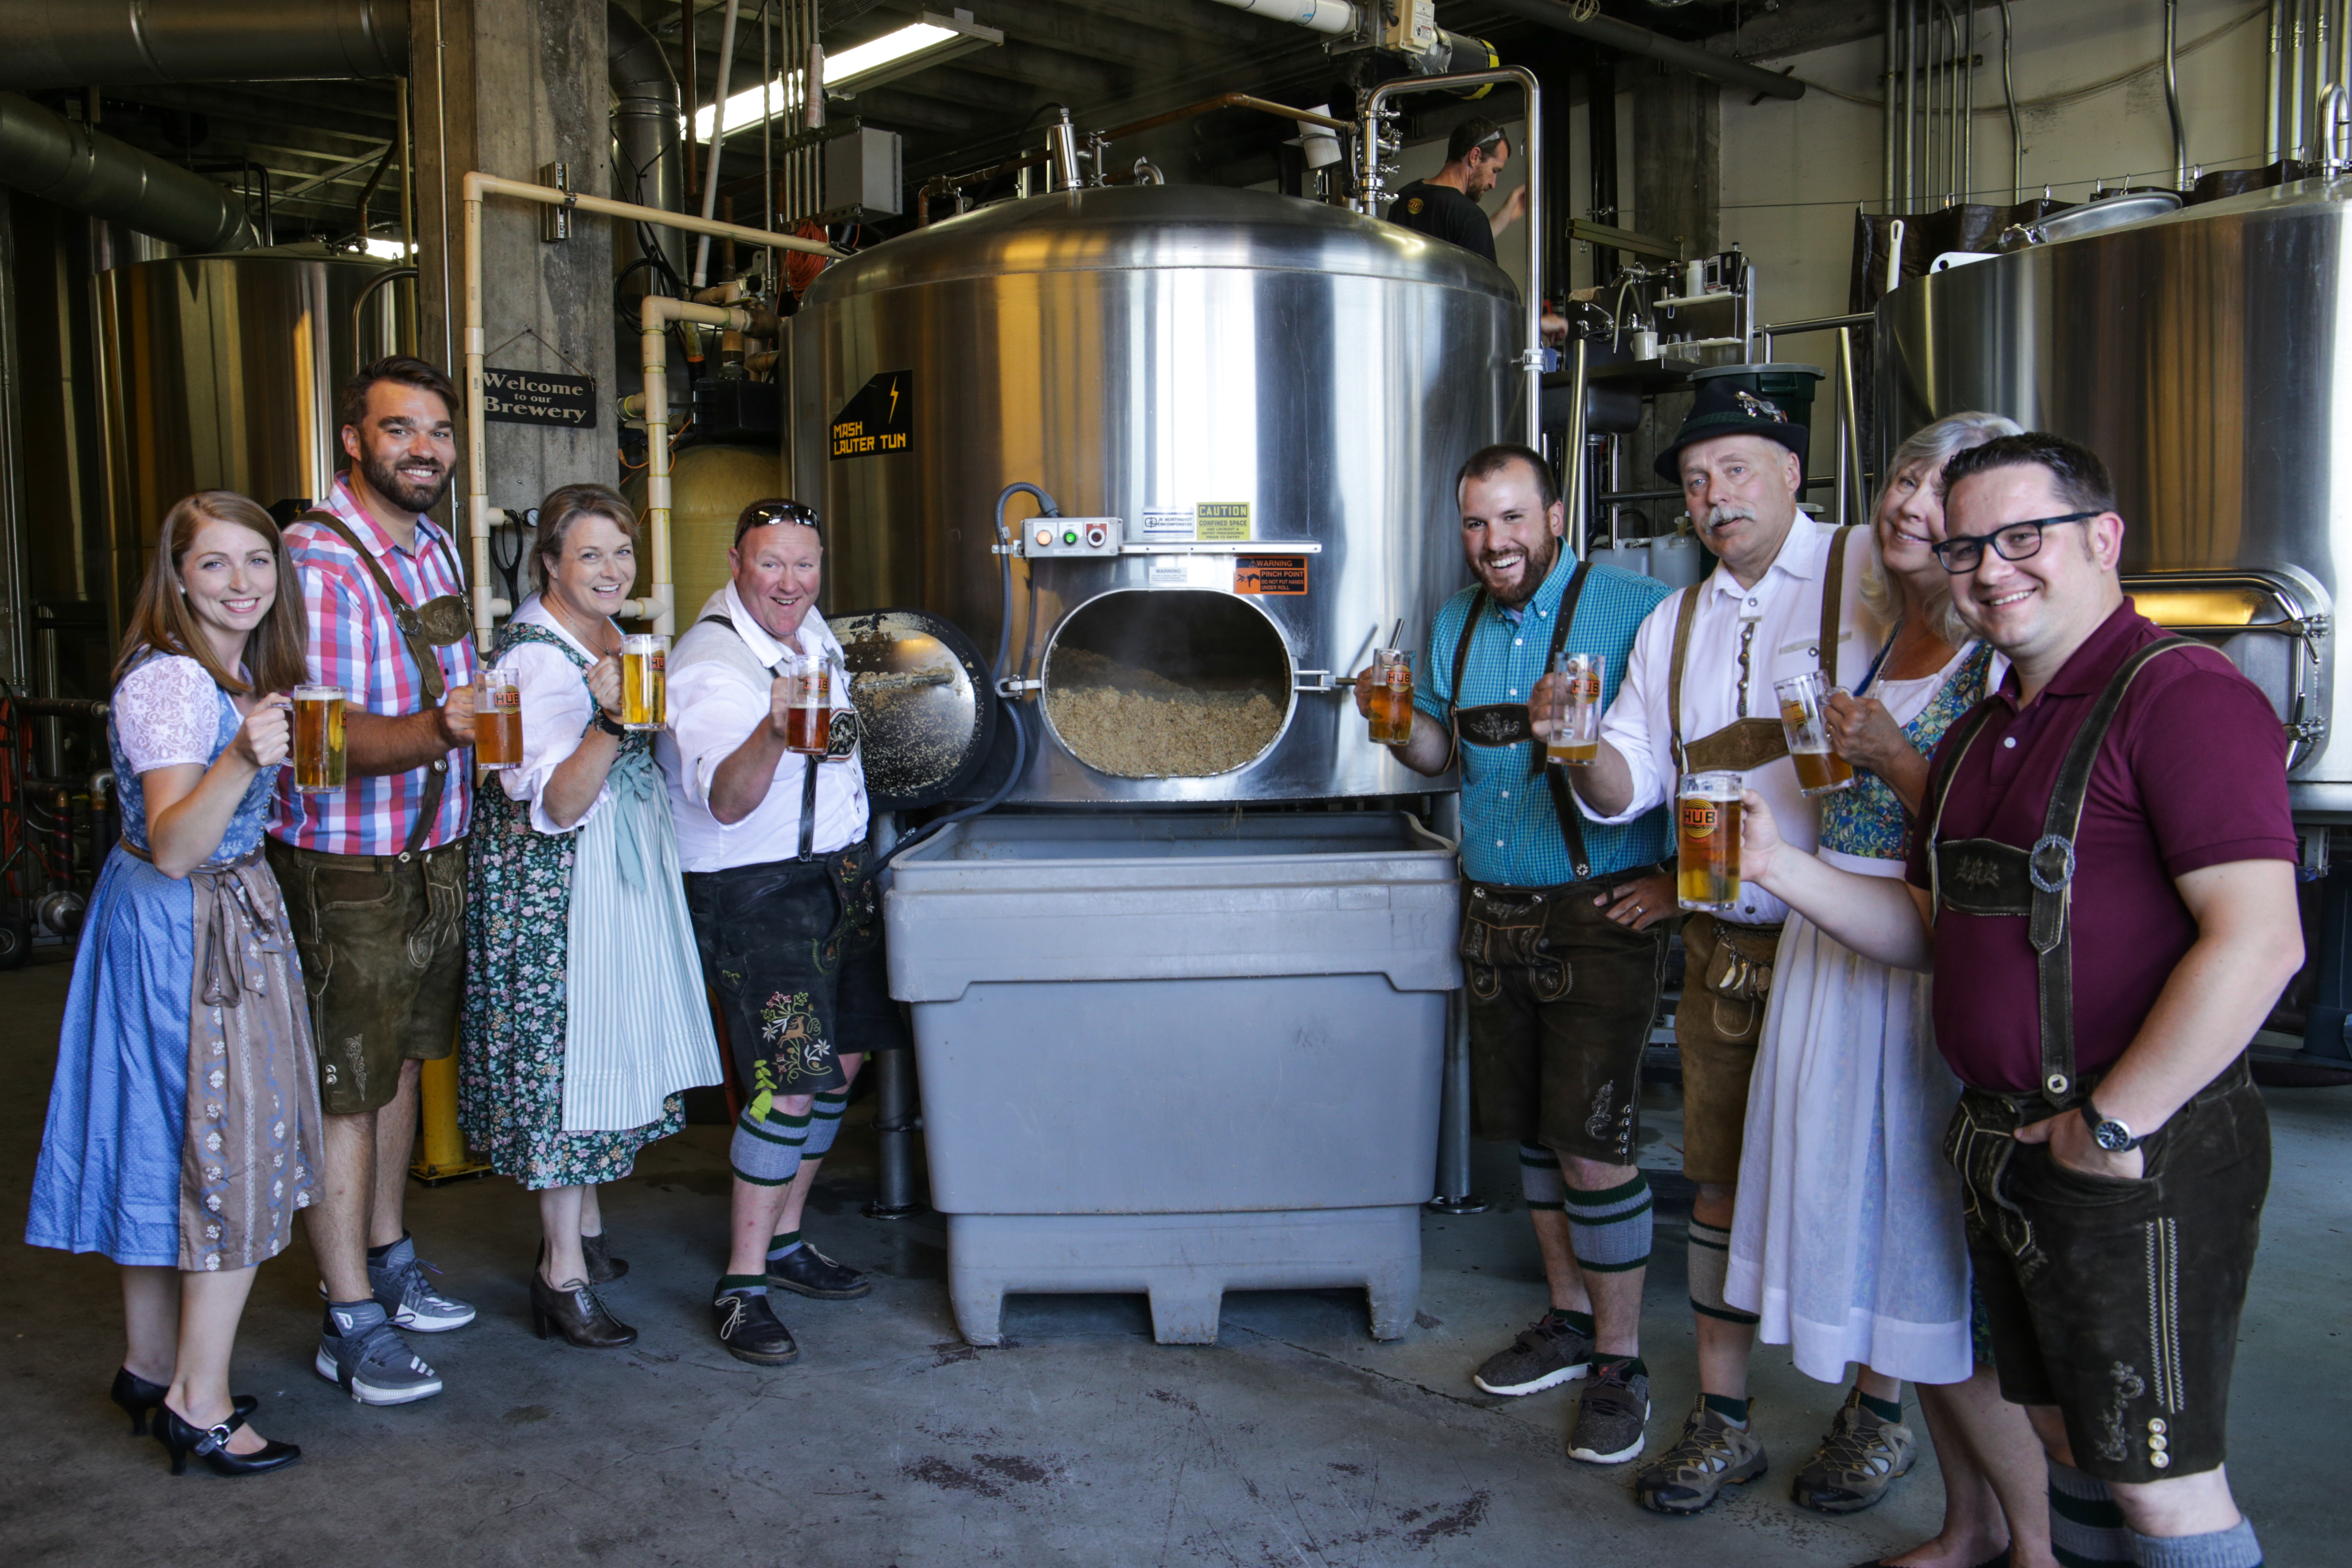 mount angel dating Hopworks urban brewery new volksbier – credit hub portland, oregon, august 29, 2017 – celebrating bavarian culture at mount angel oktoberfest is a tradition dating back more than a half-century.